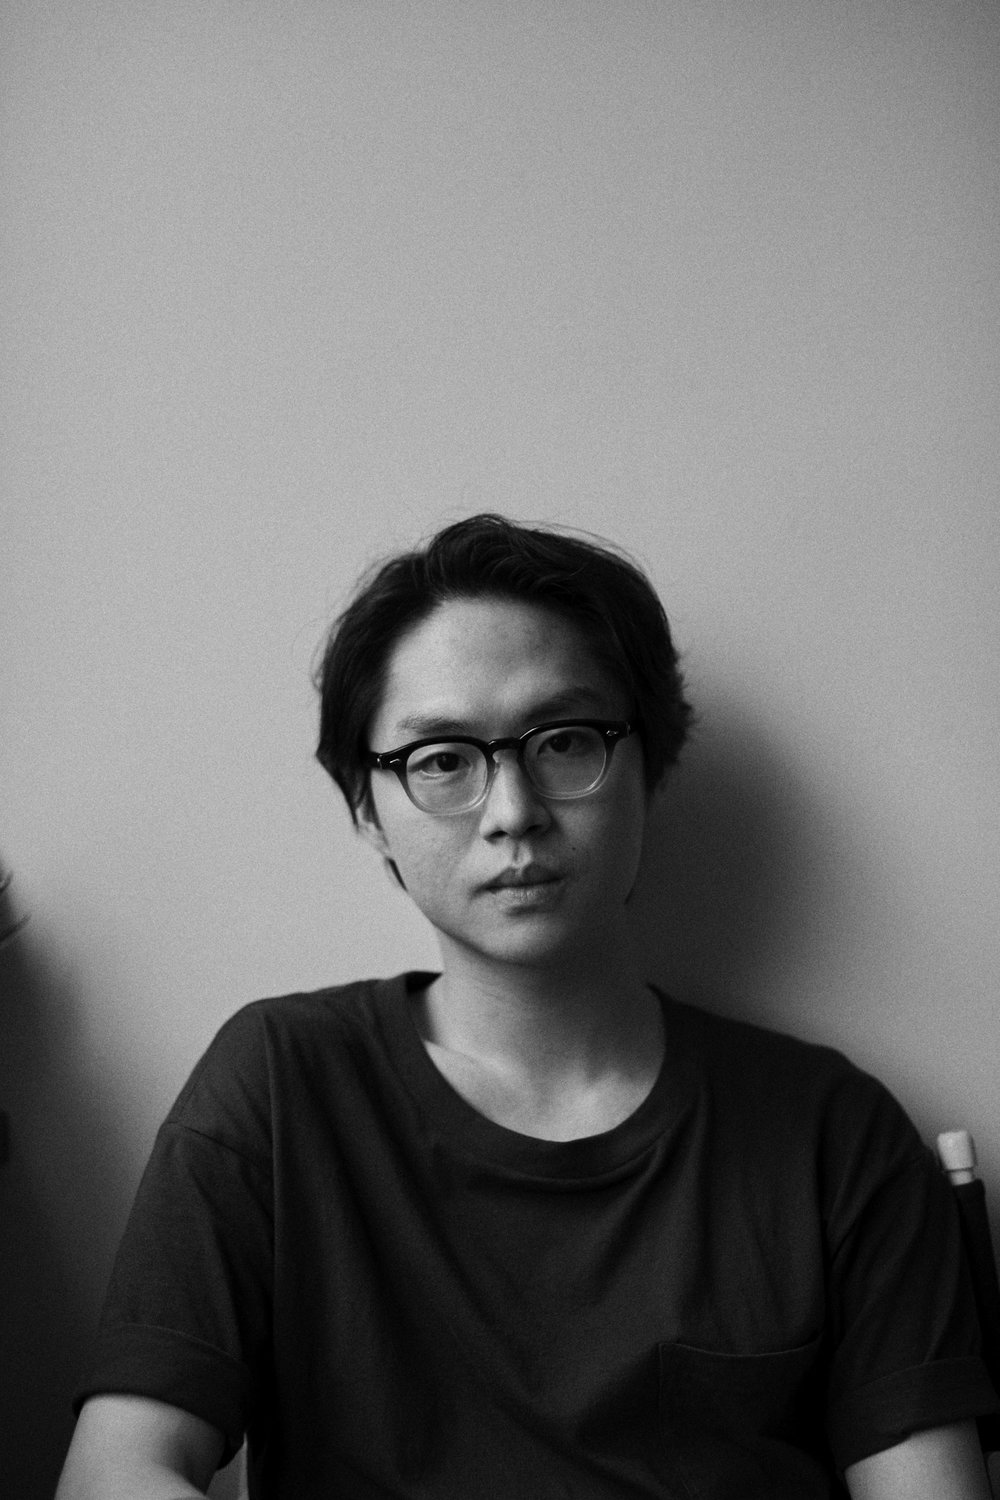 Olivier Cong (Still/Loud). Hong Kong. 2018